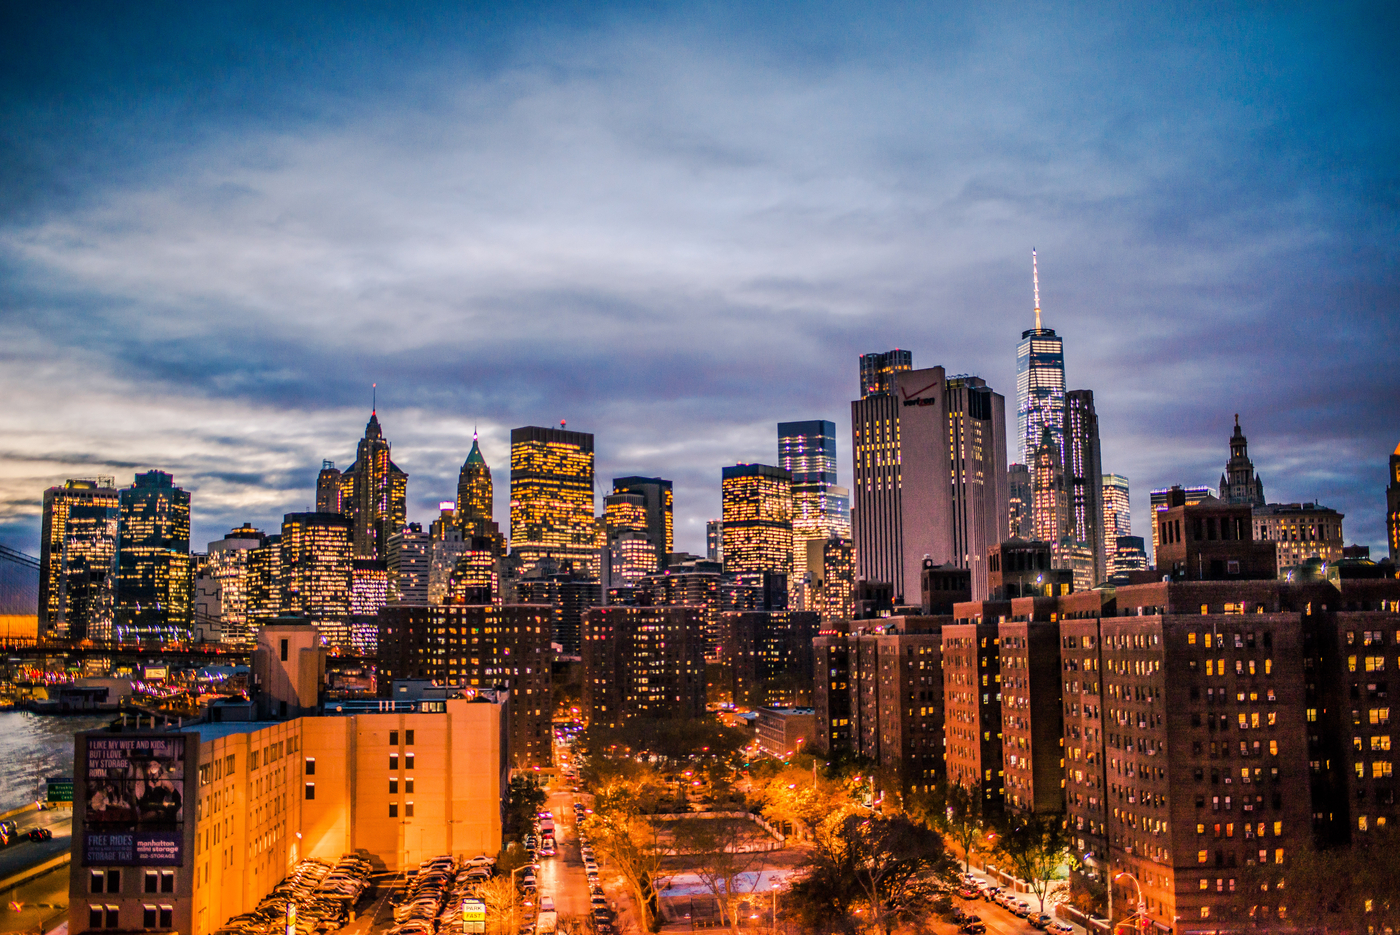 MUST SEE PLACES IN NEW YORK